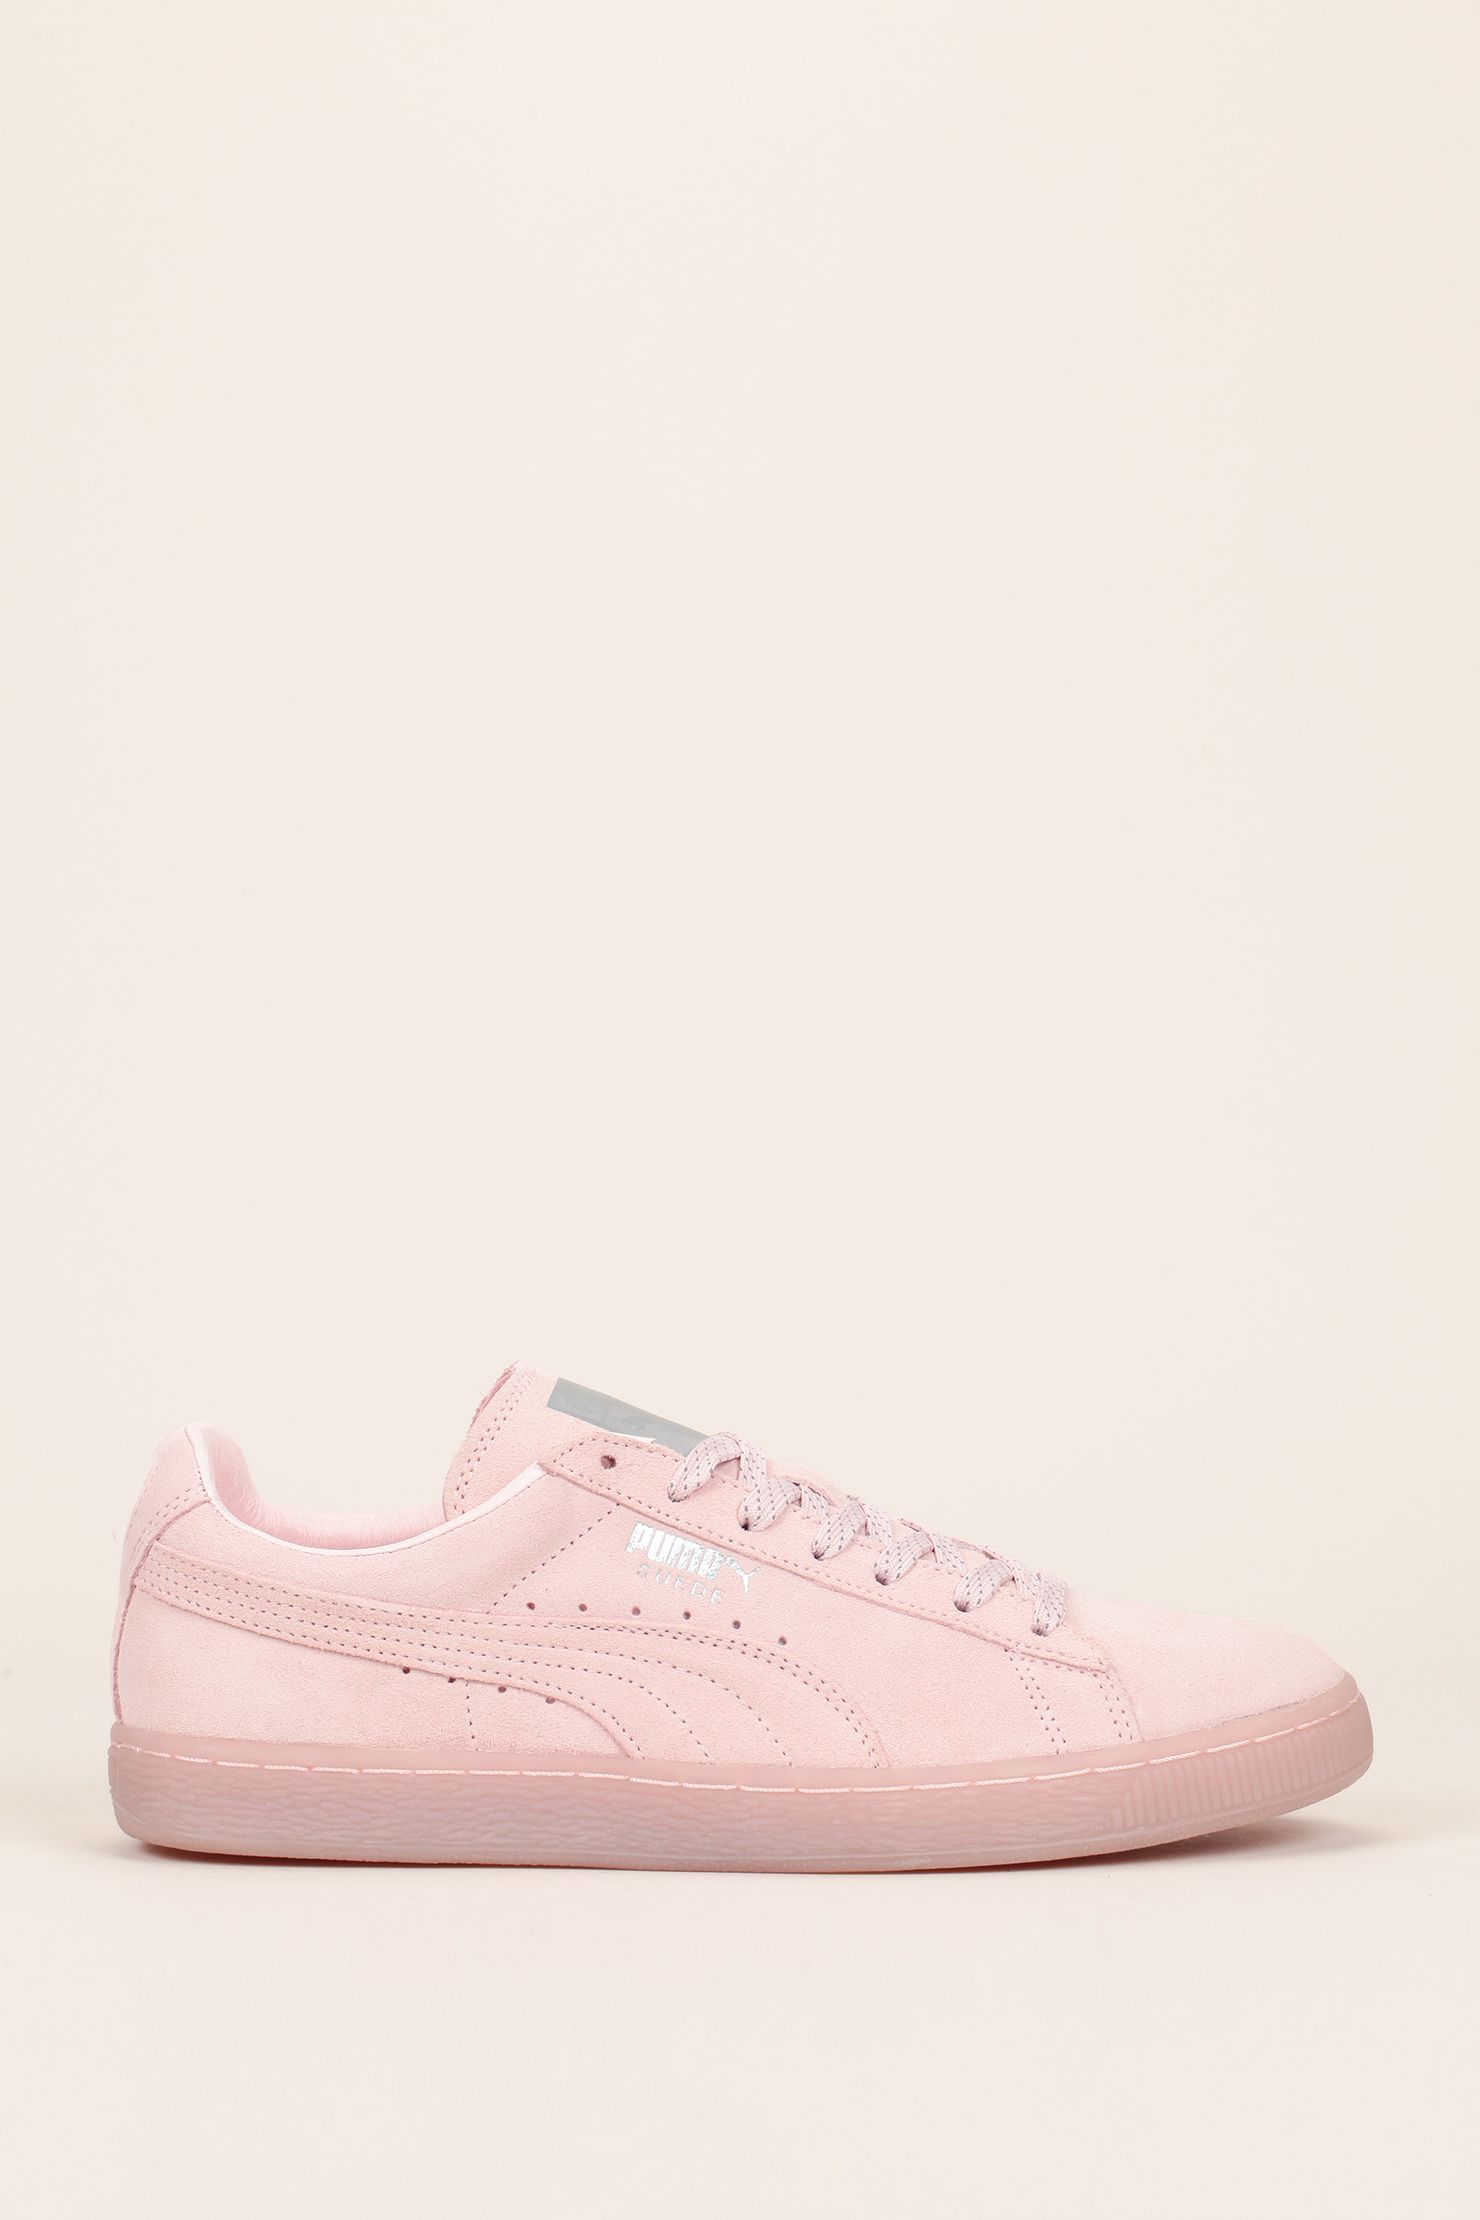 puma suede rose pale